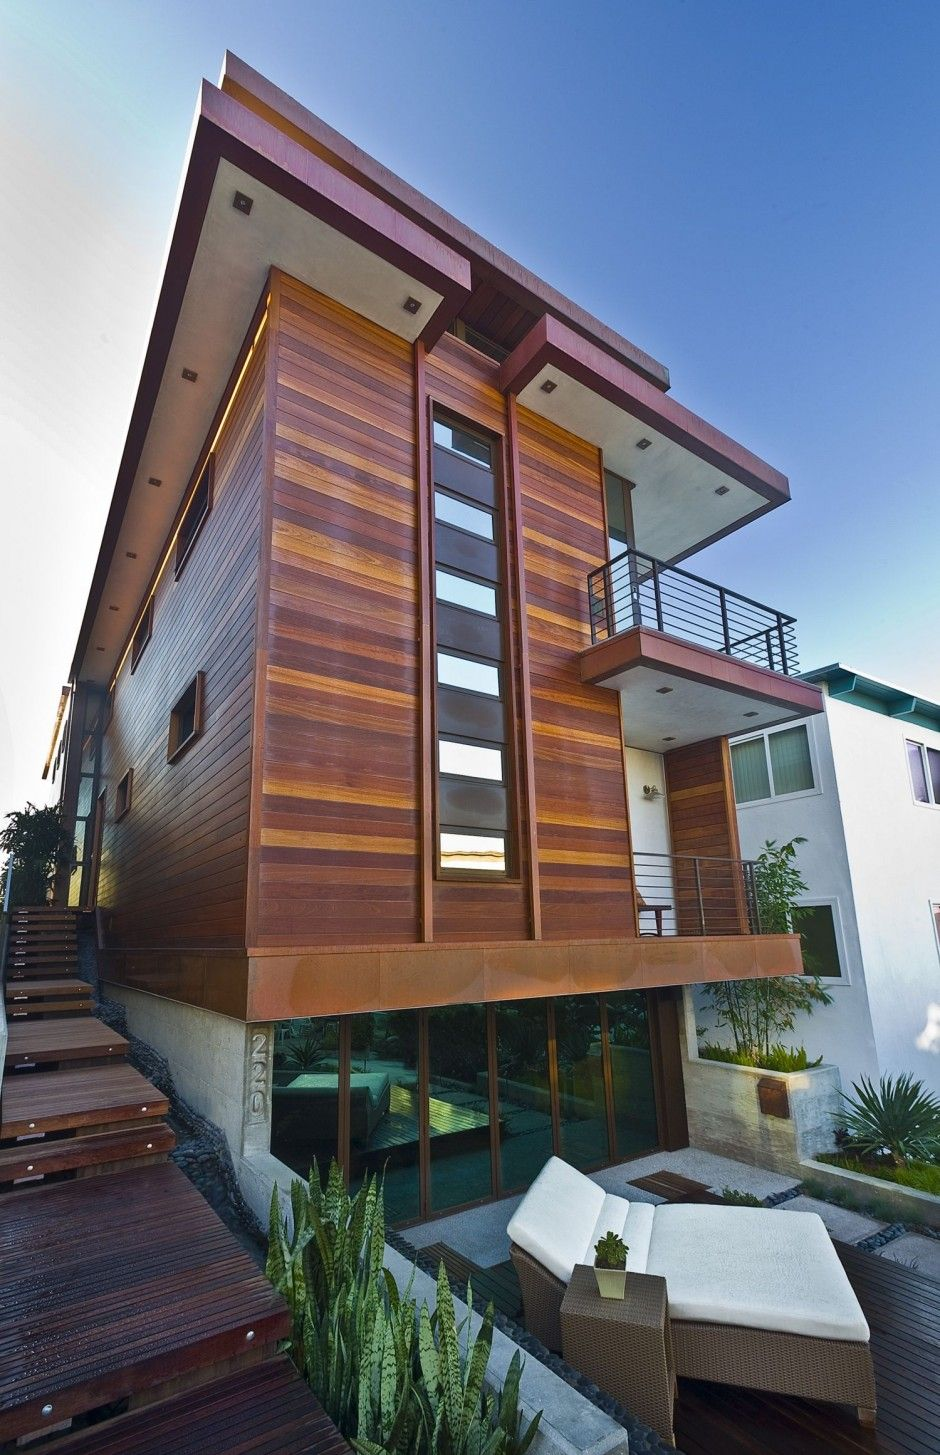 The th street home by lazar design build not my style but it is very consistent inside out also rh pinterest